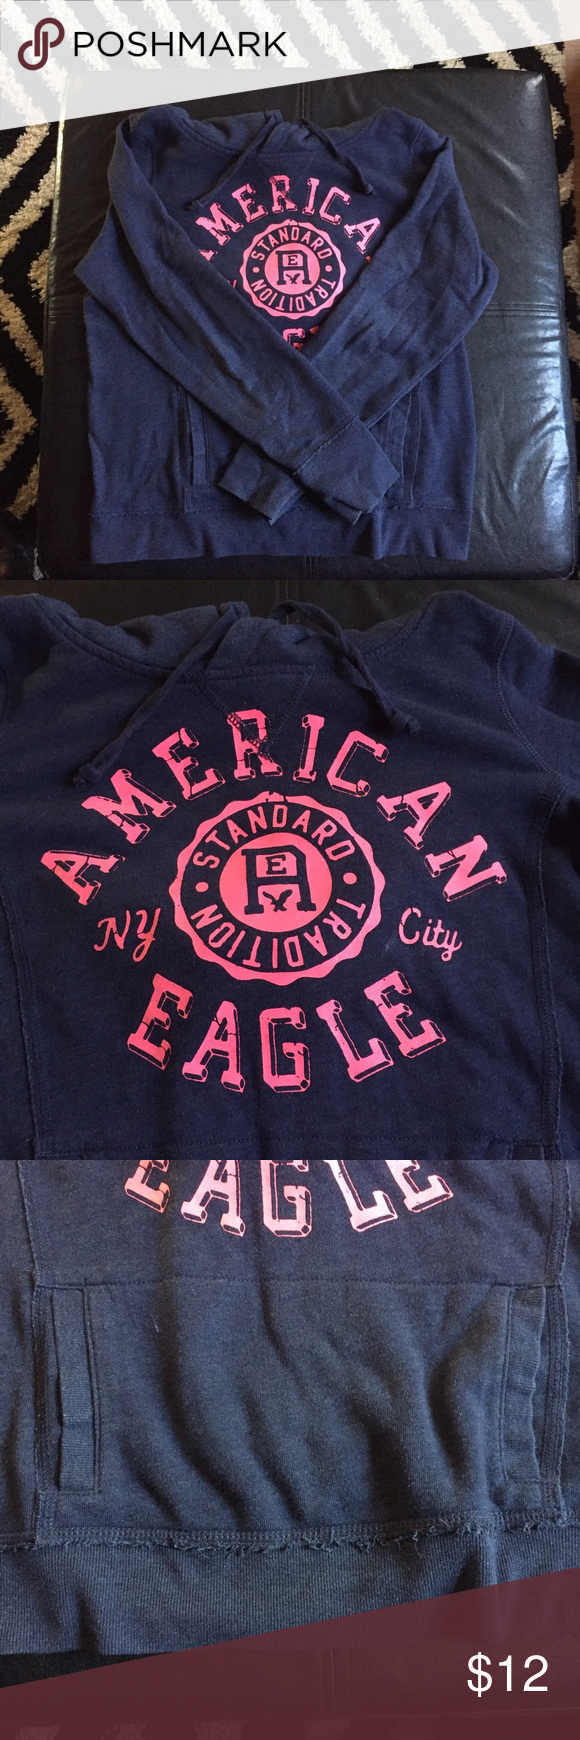 American Eagle Navy Blue Logo Hoodie Navy Blue Hoodie with Pink Logo Writing from American Eagle! This is a size Large (L)! American Eagle Outfitters Tops Sweatshirts & Hoodies